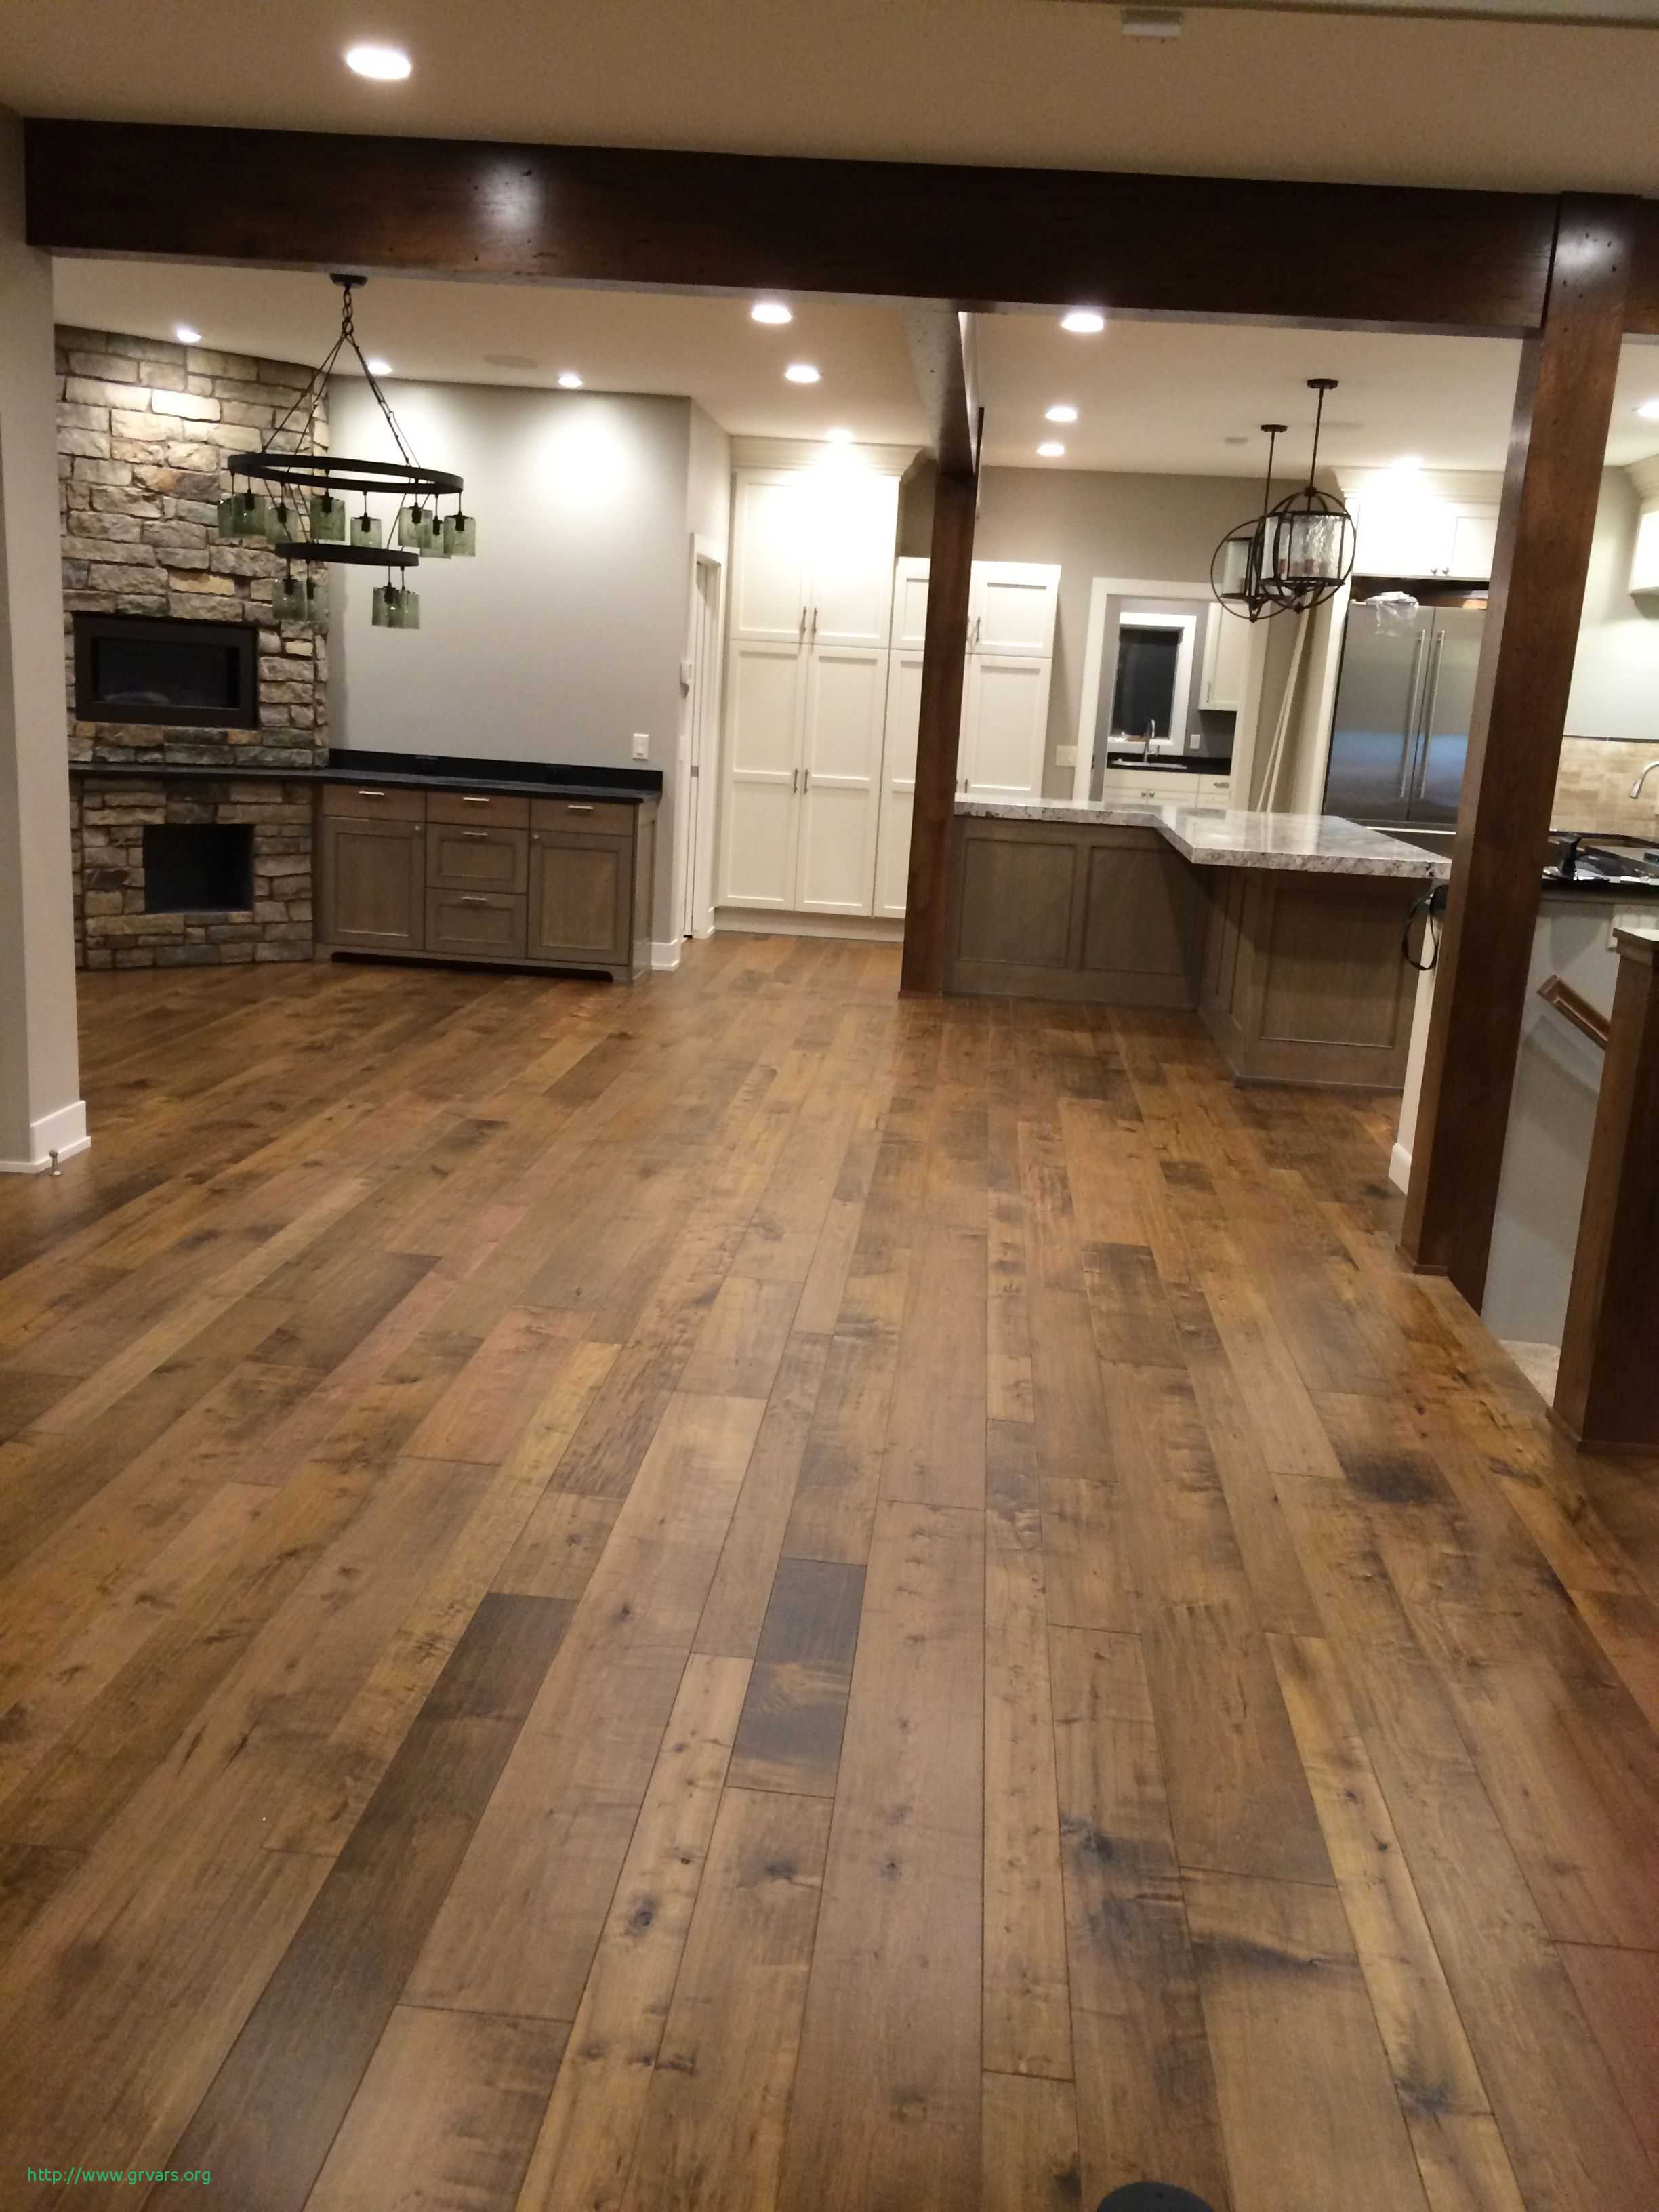 hardwood floor refinishing polyurethane of 23 meilleur de can u refinish engineered hardwood floors ideas blog within the floors were purchased from carpets direct and installed by fulton construction engineered hardwood flooring collection